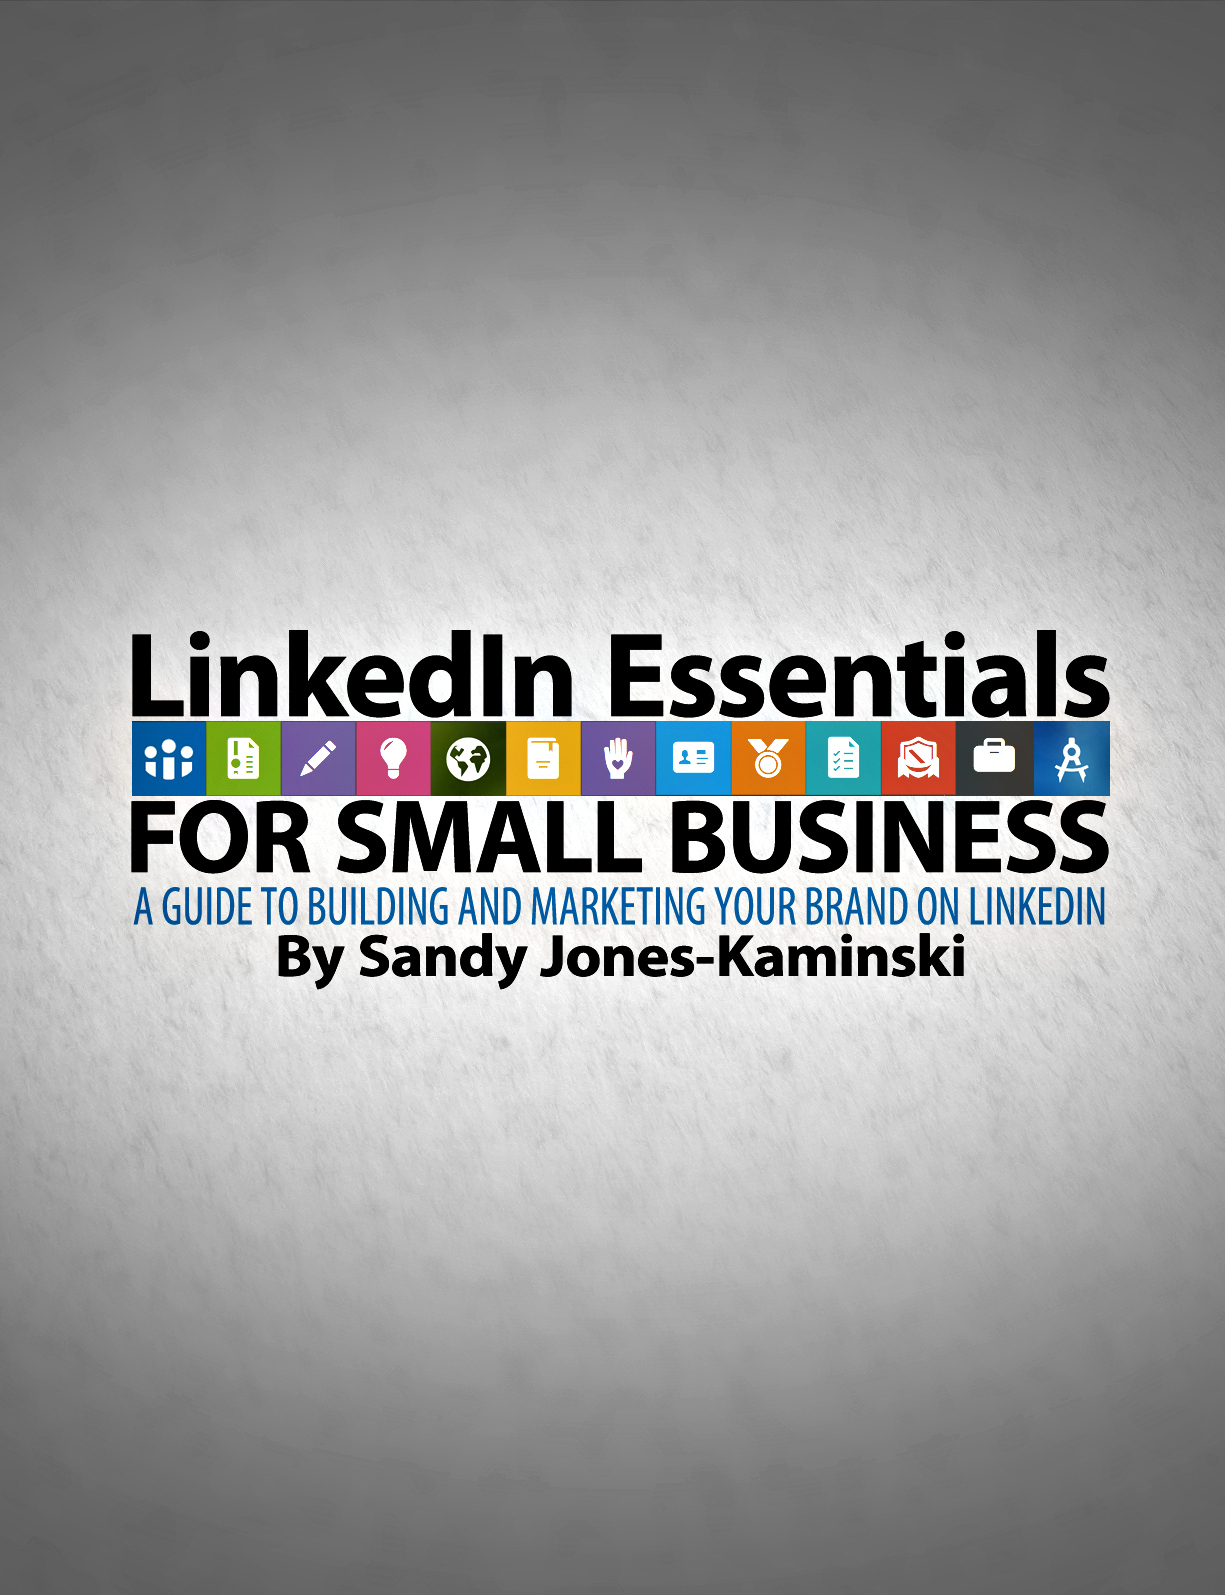 Register to be in-the-loop about Sandy Jones-Kaminski's new LinkedIn Essentials for Small Business eBook